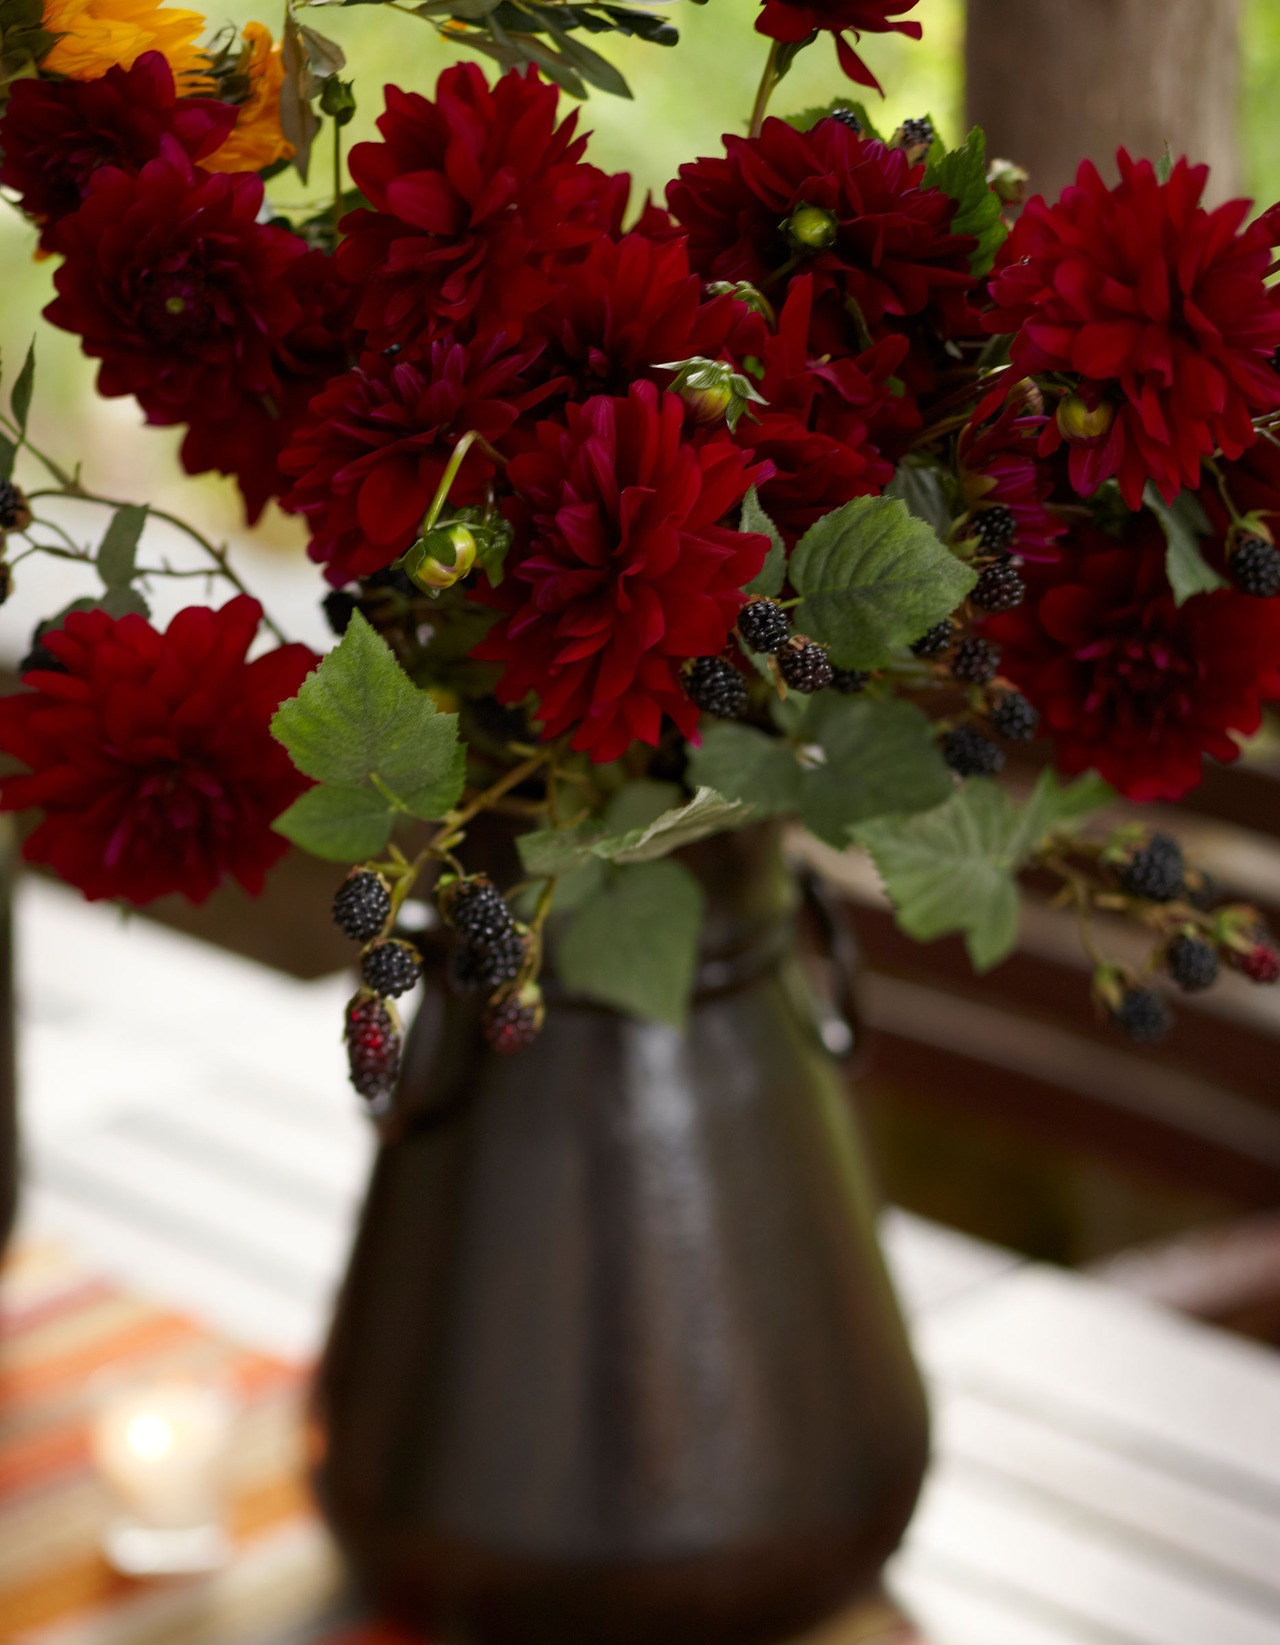 potterybarn:  A bouquet of lush red dahlias and blackberries